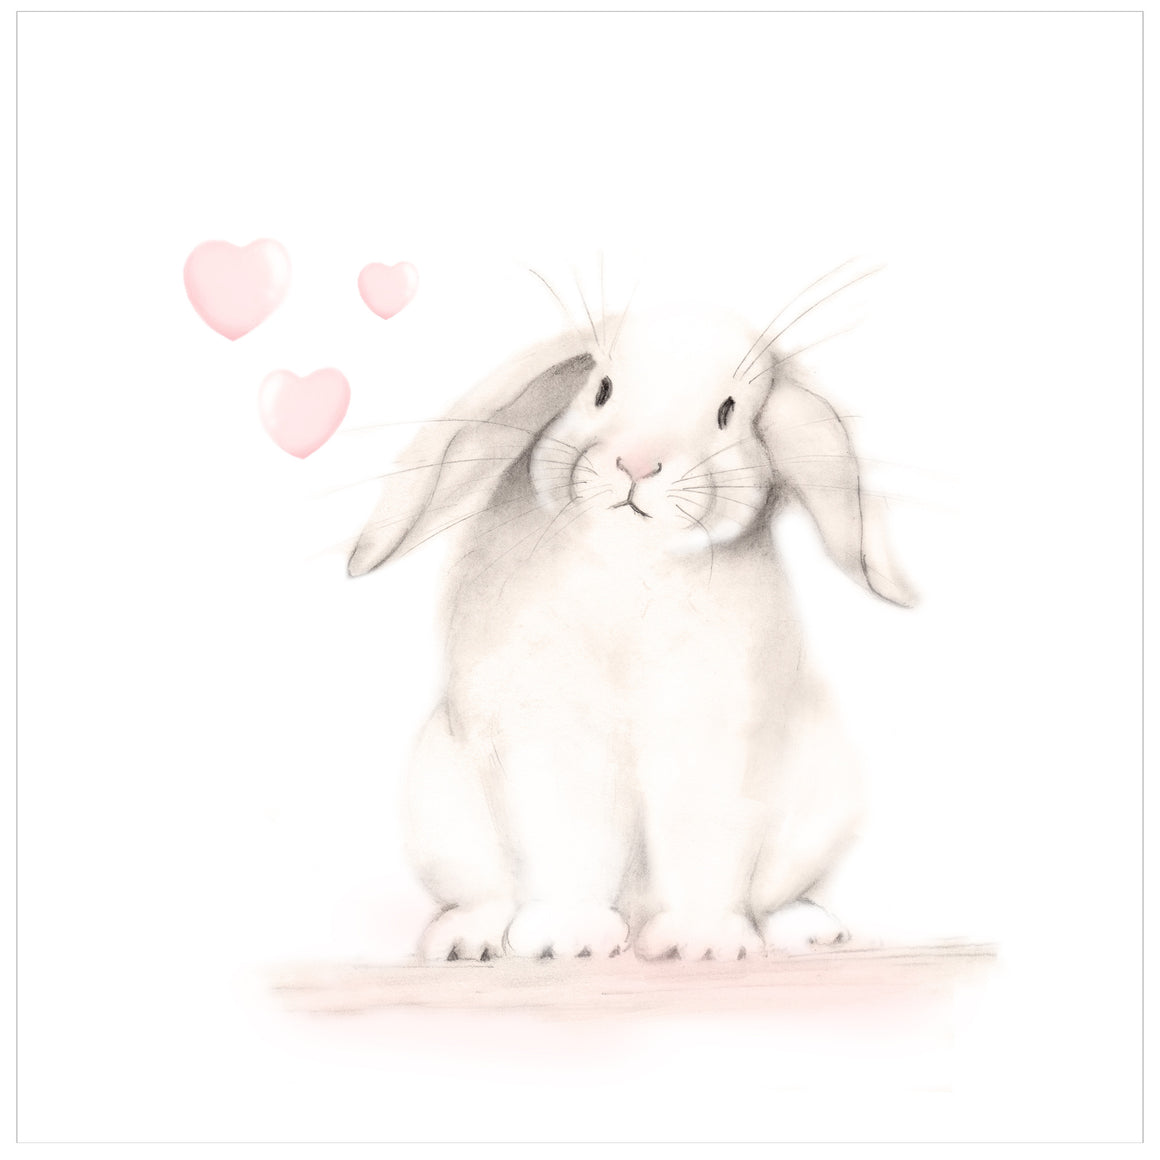 Bunny with Hearts drawing